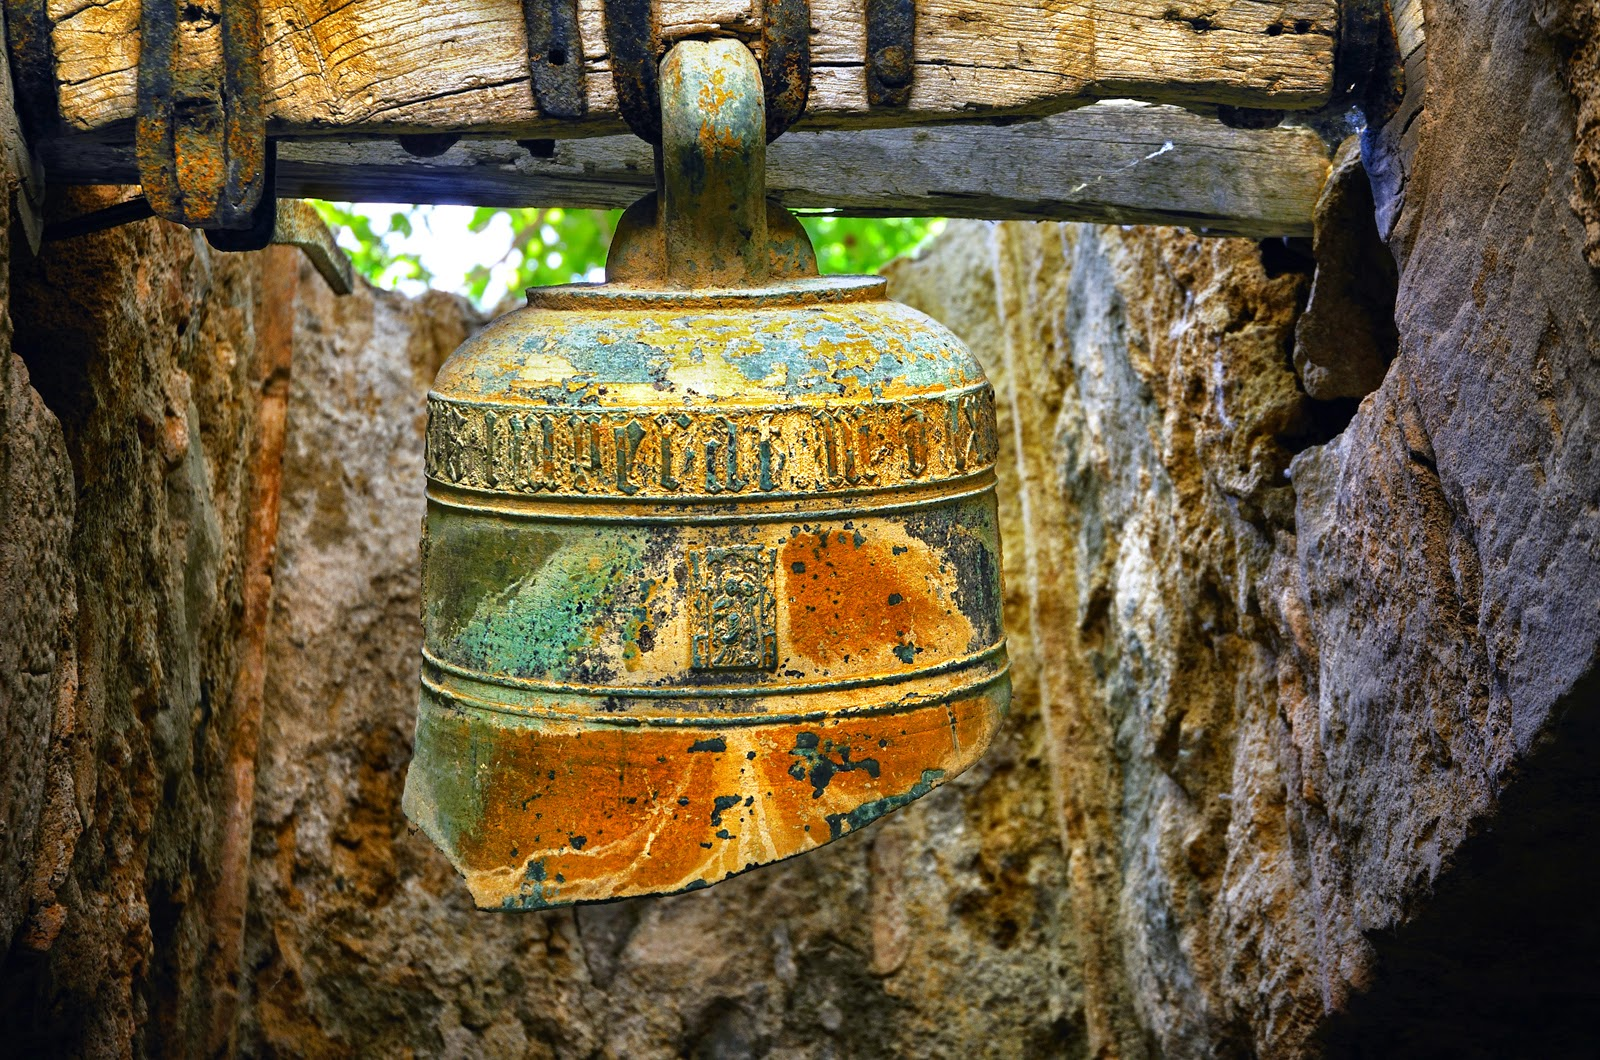 The broken bell of Sant Miquel del Fai